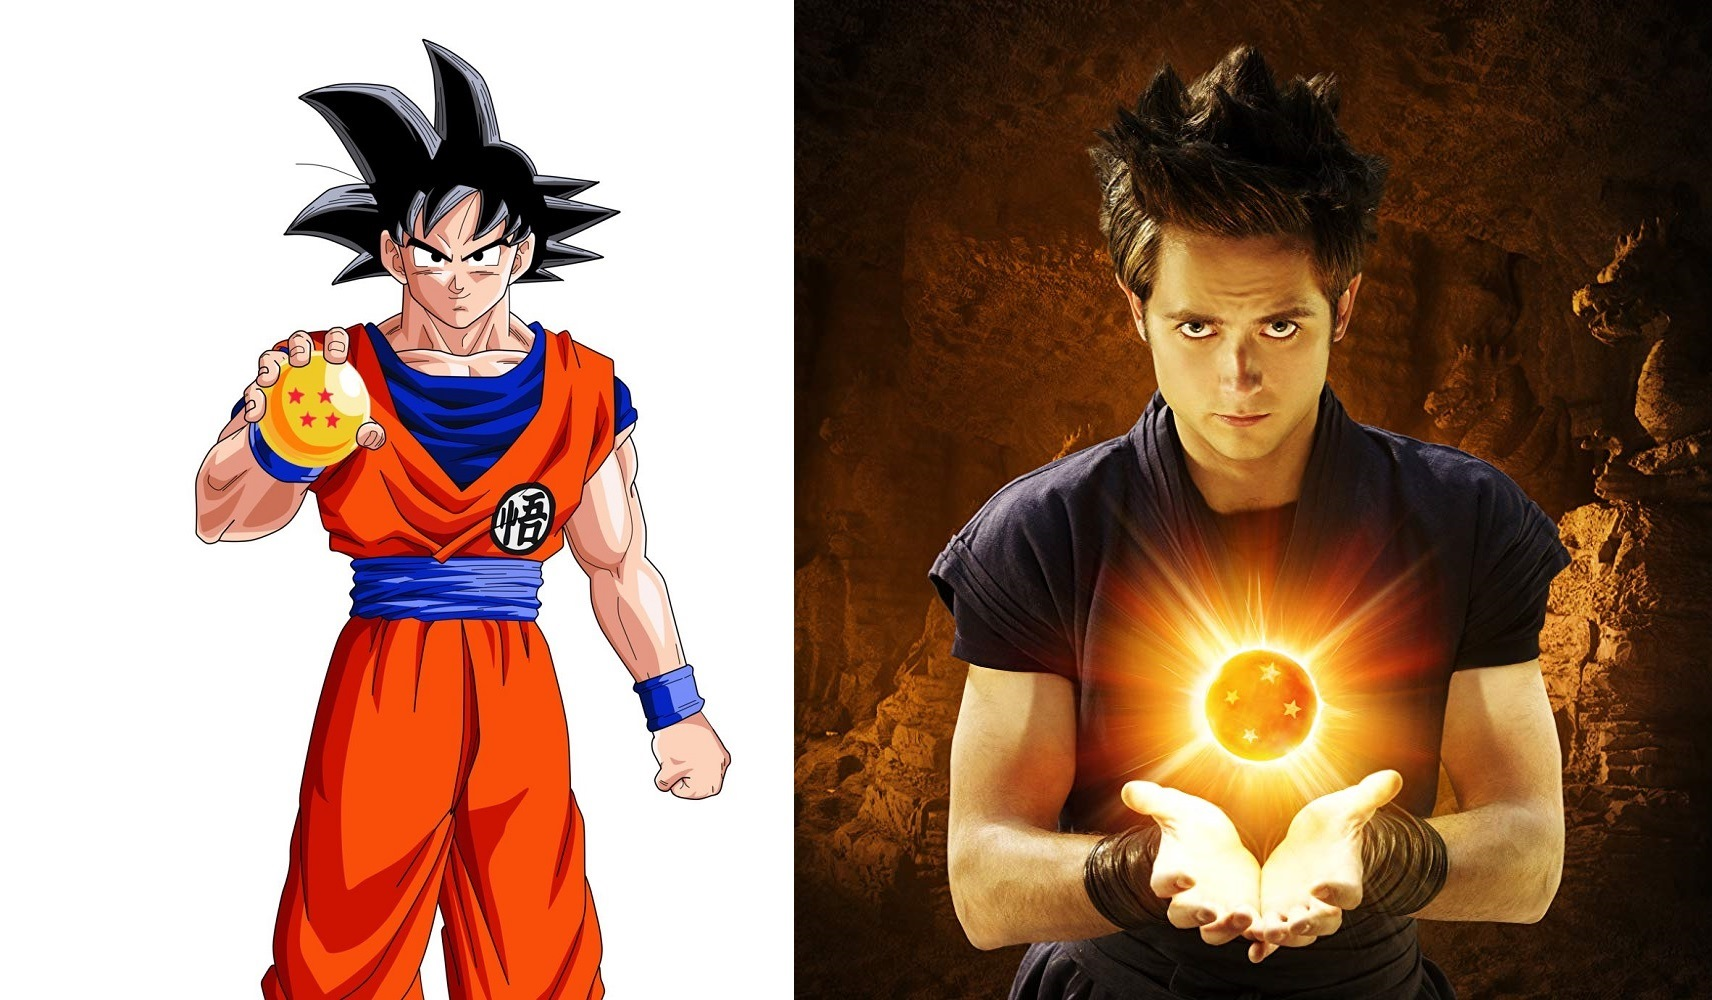 The anime version of Goku vs Justin Chatwin as the live-action Goku in Dragonball Evolution (2009)